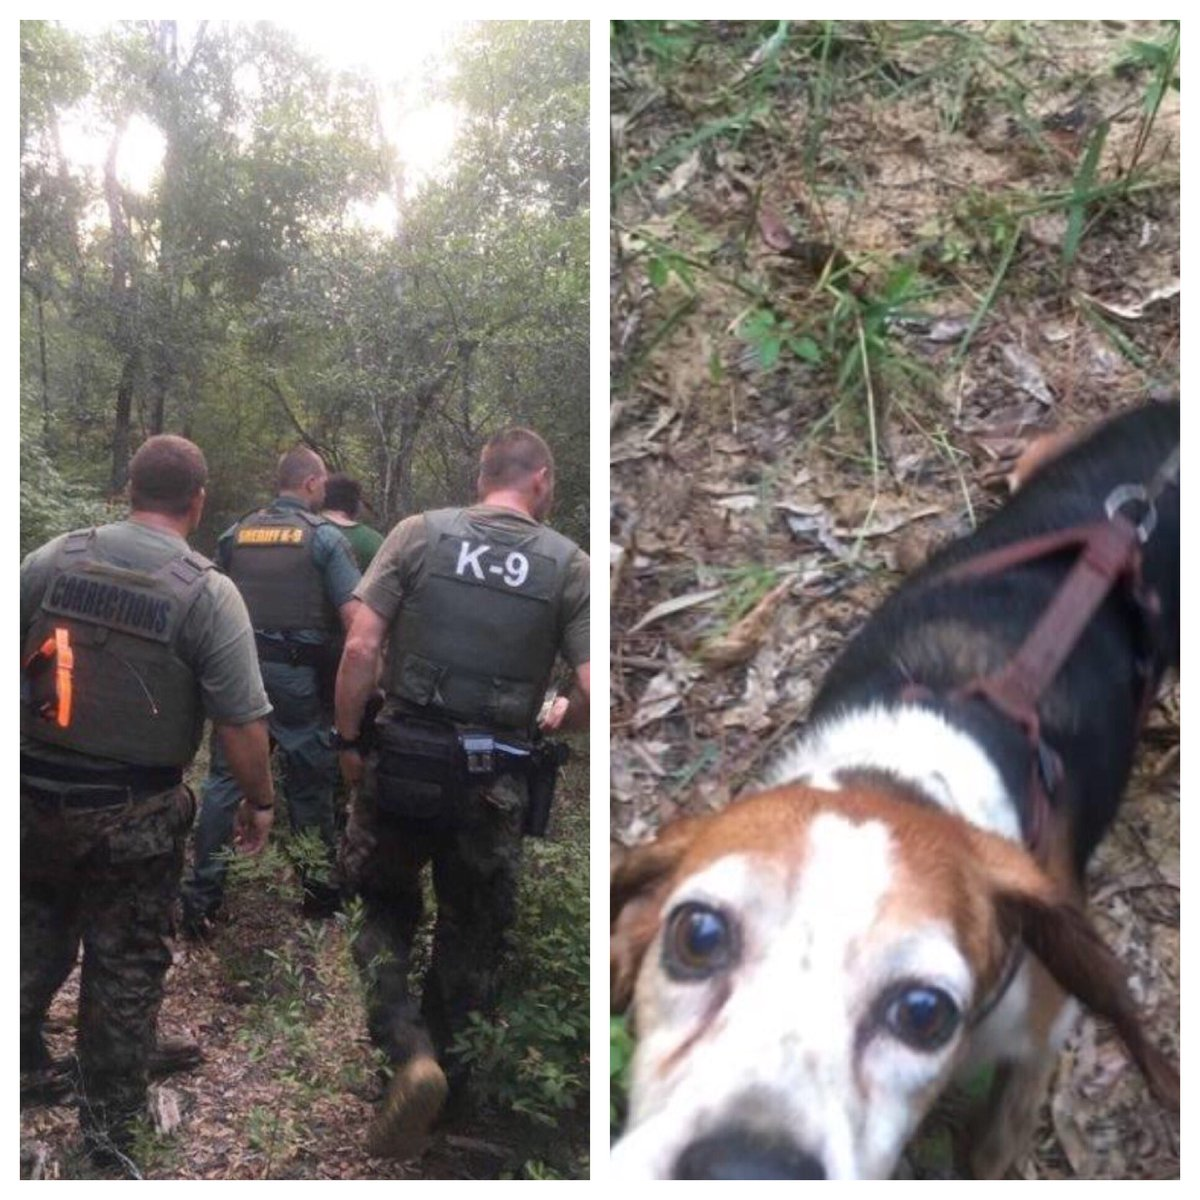 #K9 success!  #OCSO and Okaloosa Correctional Institution teams tracked thru woods & swamp to find disoriented missing Holt man. 👍⭐️🐾🐕 #lesm https://t.co/WE8ritwder